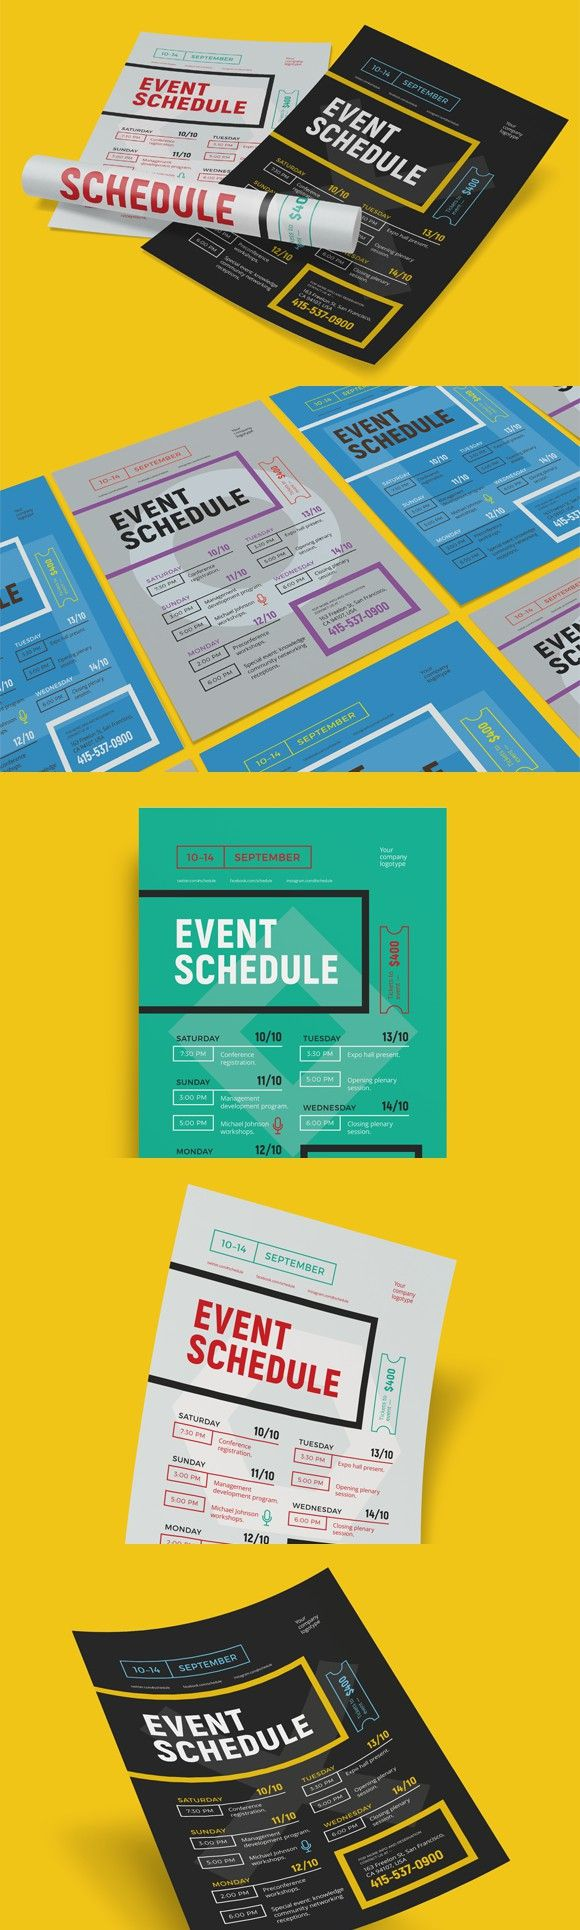 Schedule event poster template. Poster Templates. $6.00